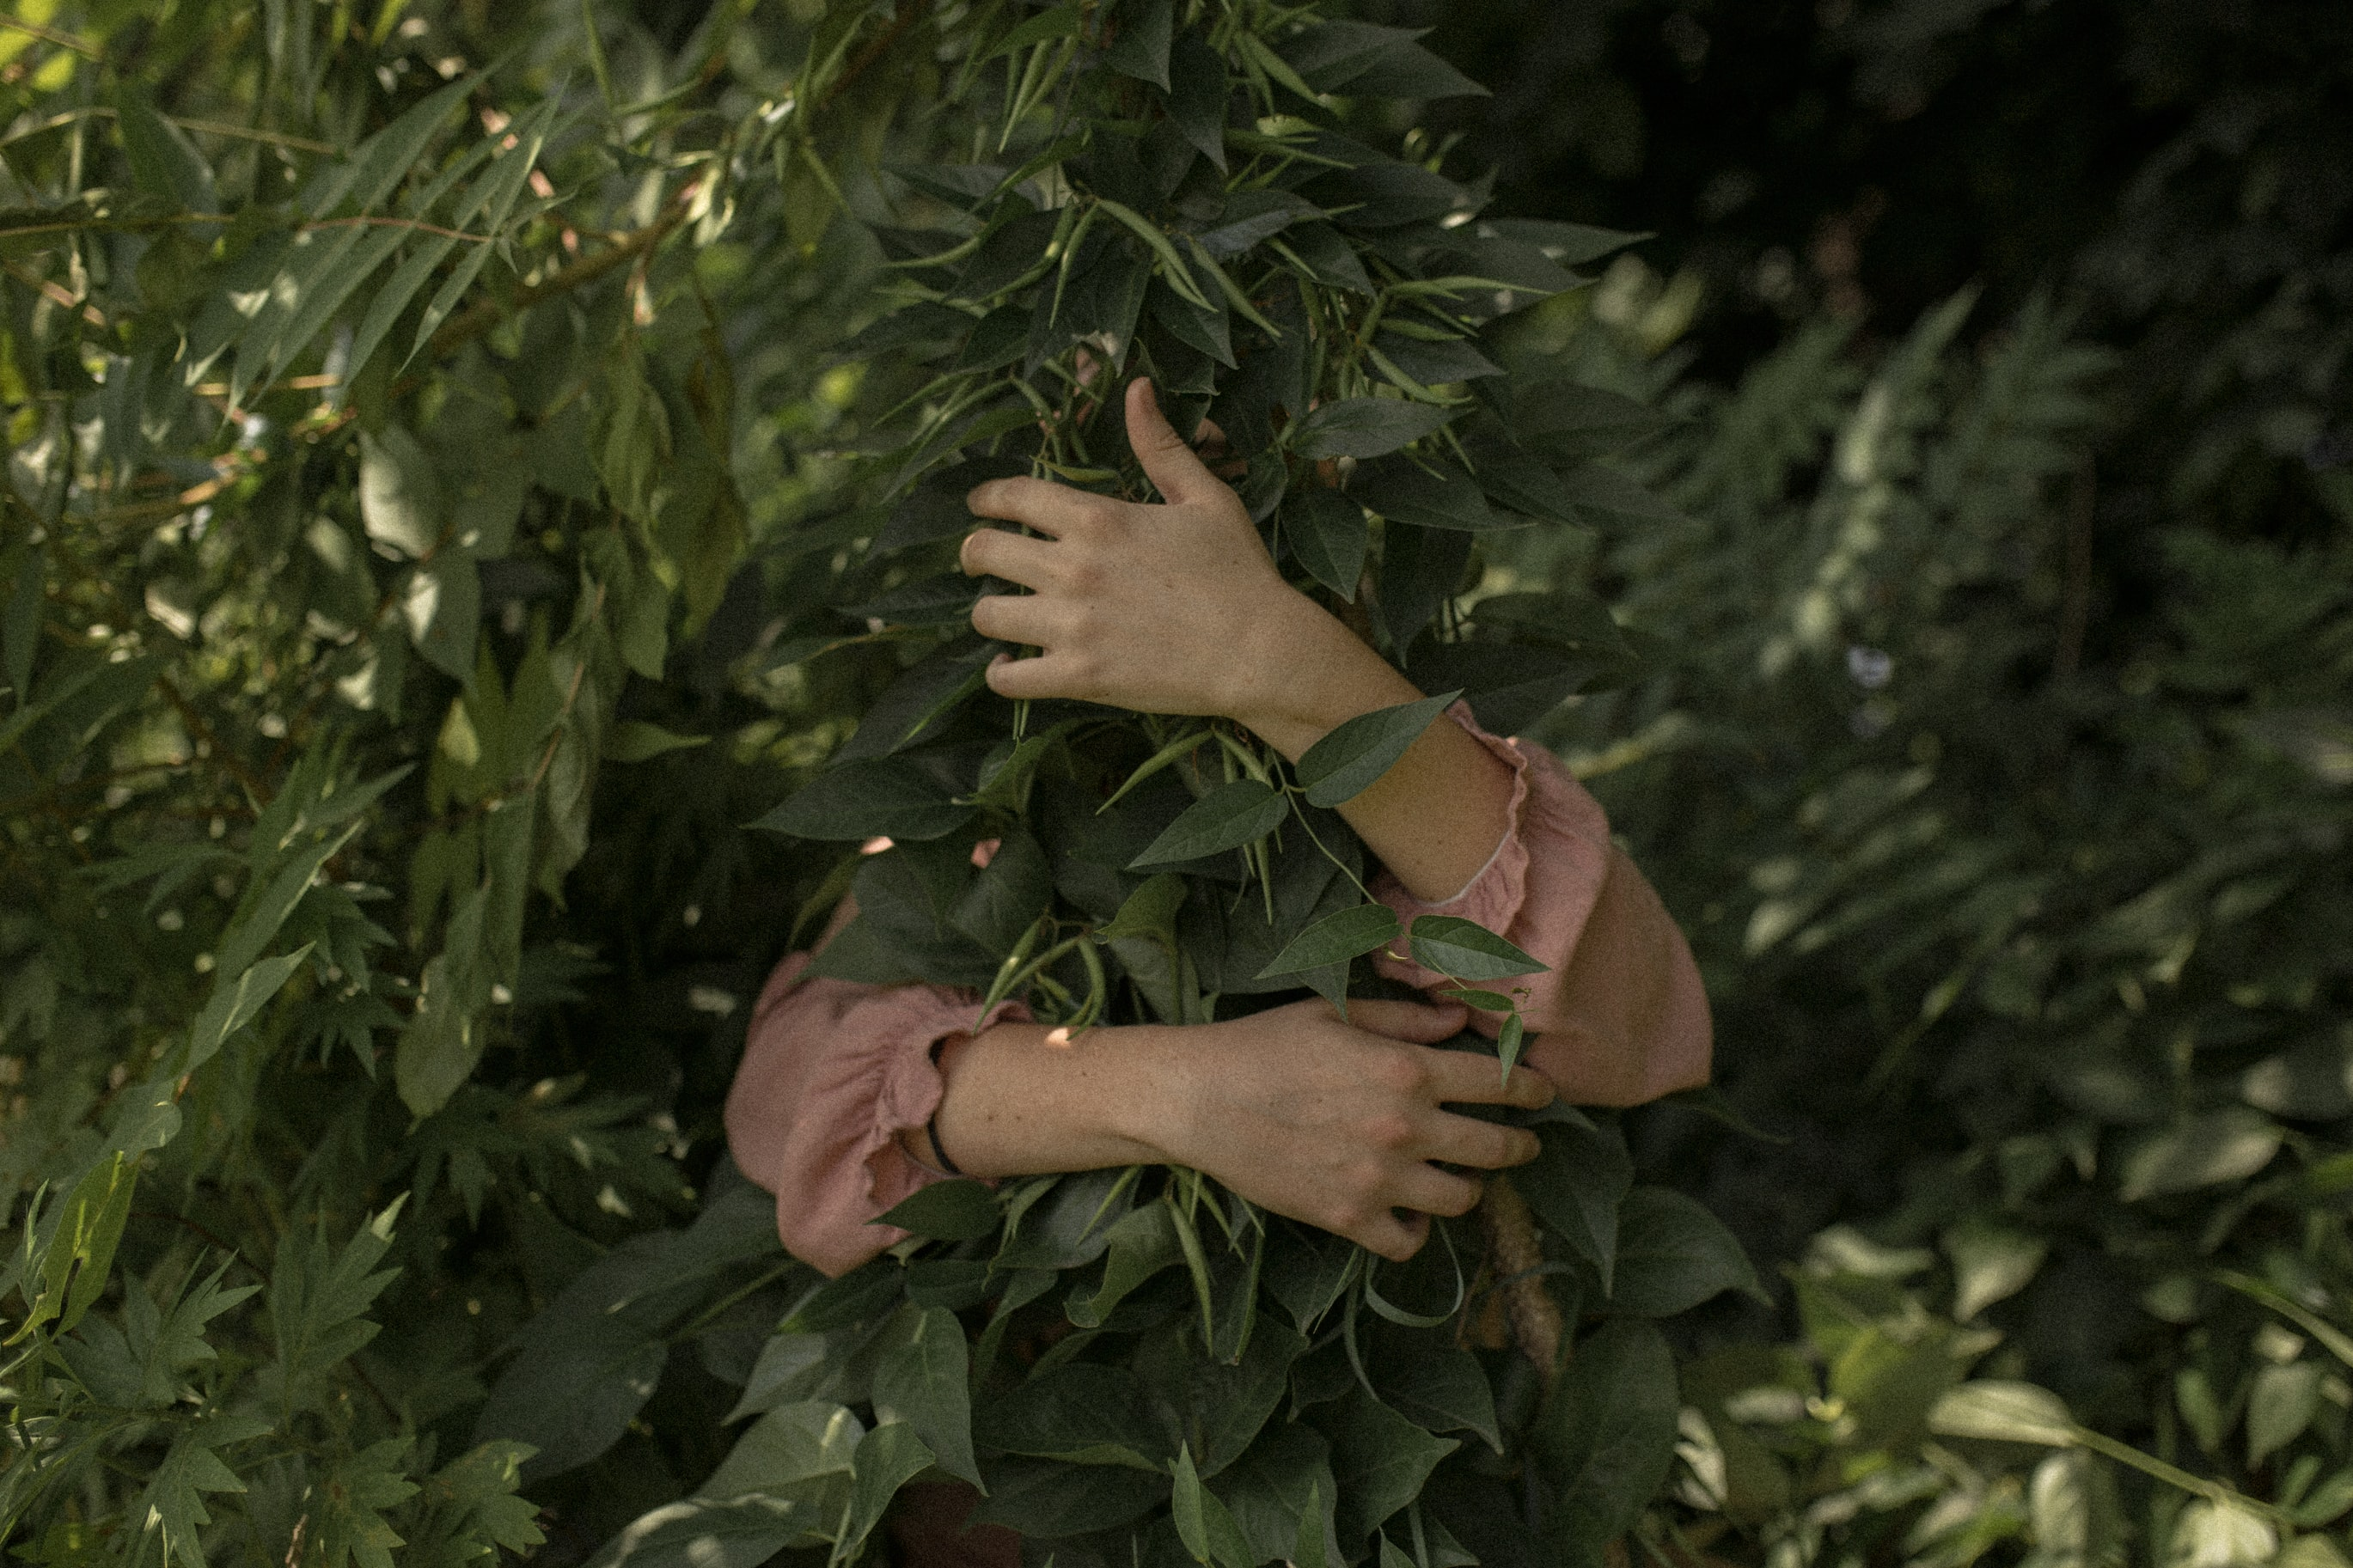 person wearing pink long-sleeved shirt hugging green leaves covering his/her body